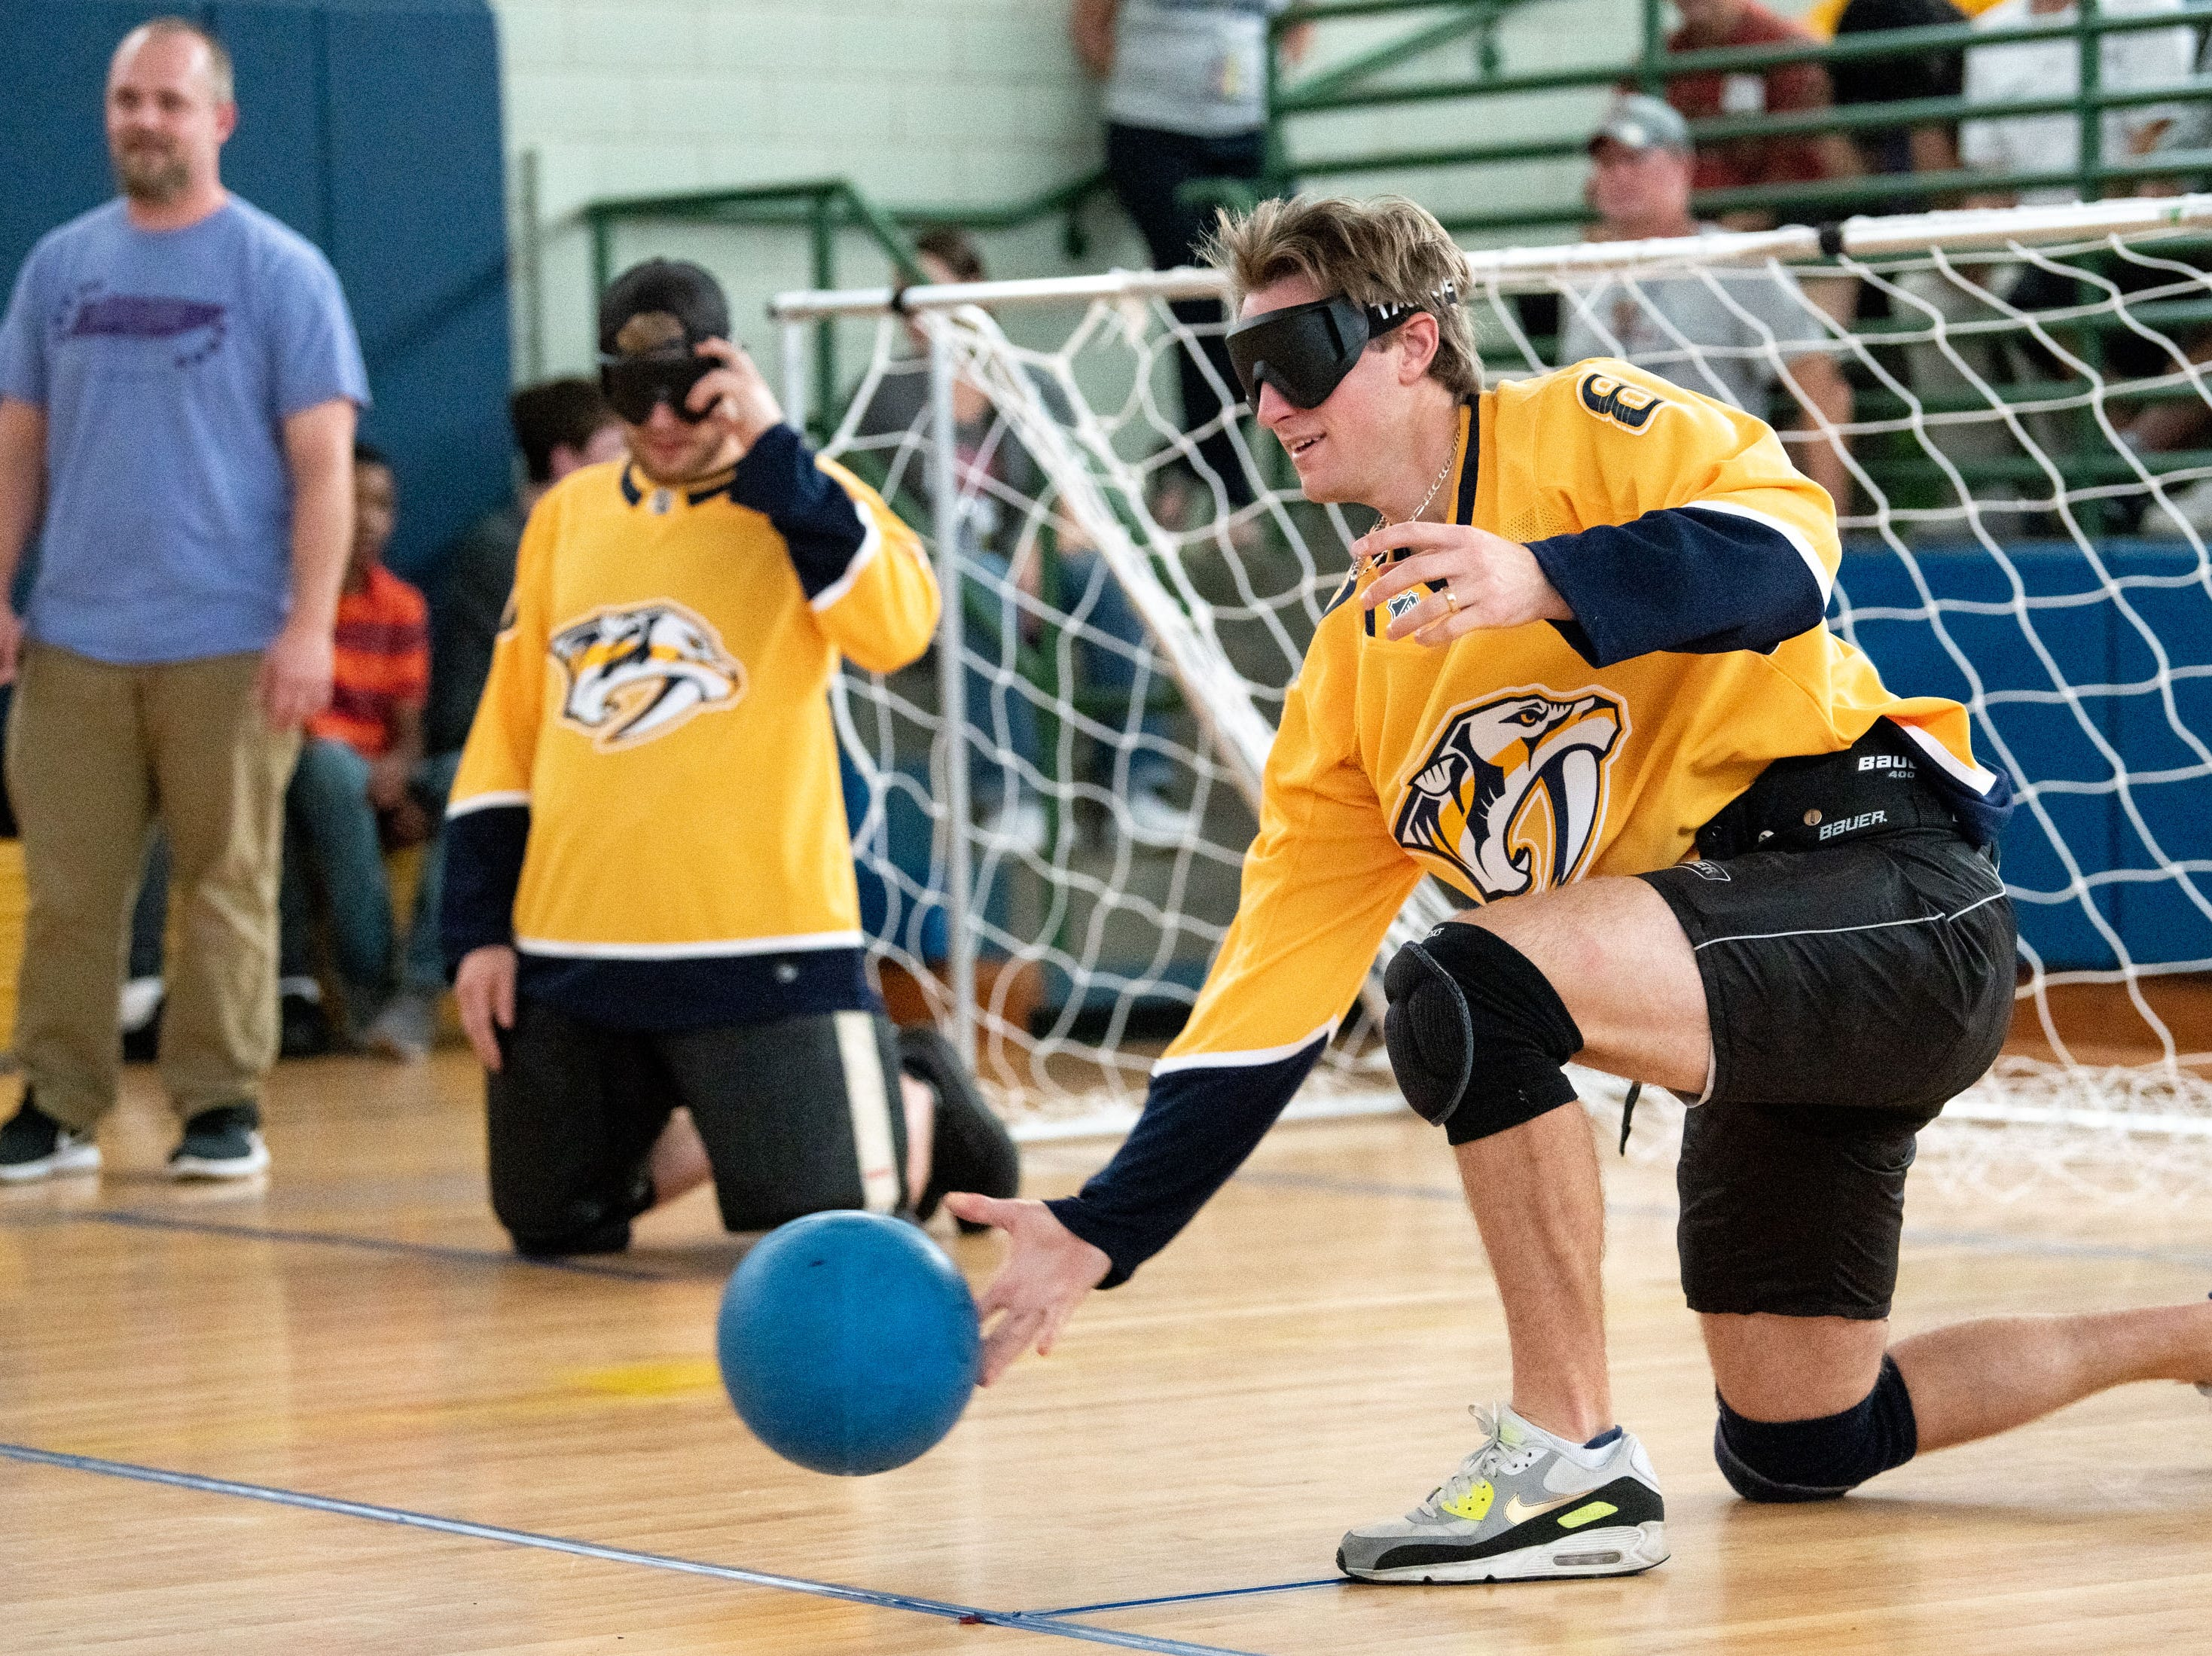 Nashville Predators forward Kyle Turris (8) throws during a game of goalball at the Tennessee School for the Blind in Nashville, Tenn., Monday, Oct. 8, 2018. Goalball is a sport designed specifically for athletes with vision impairment.